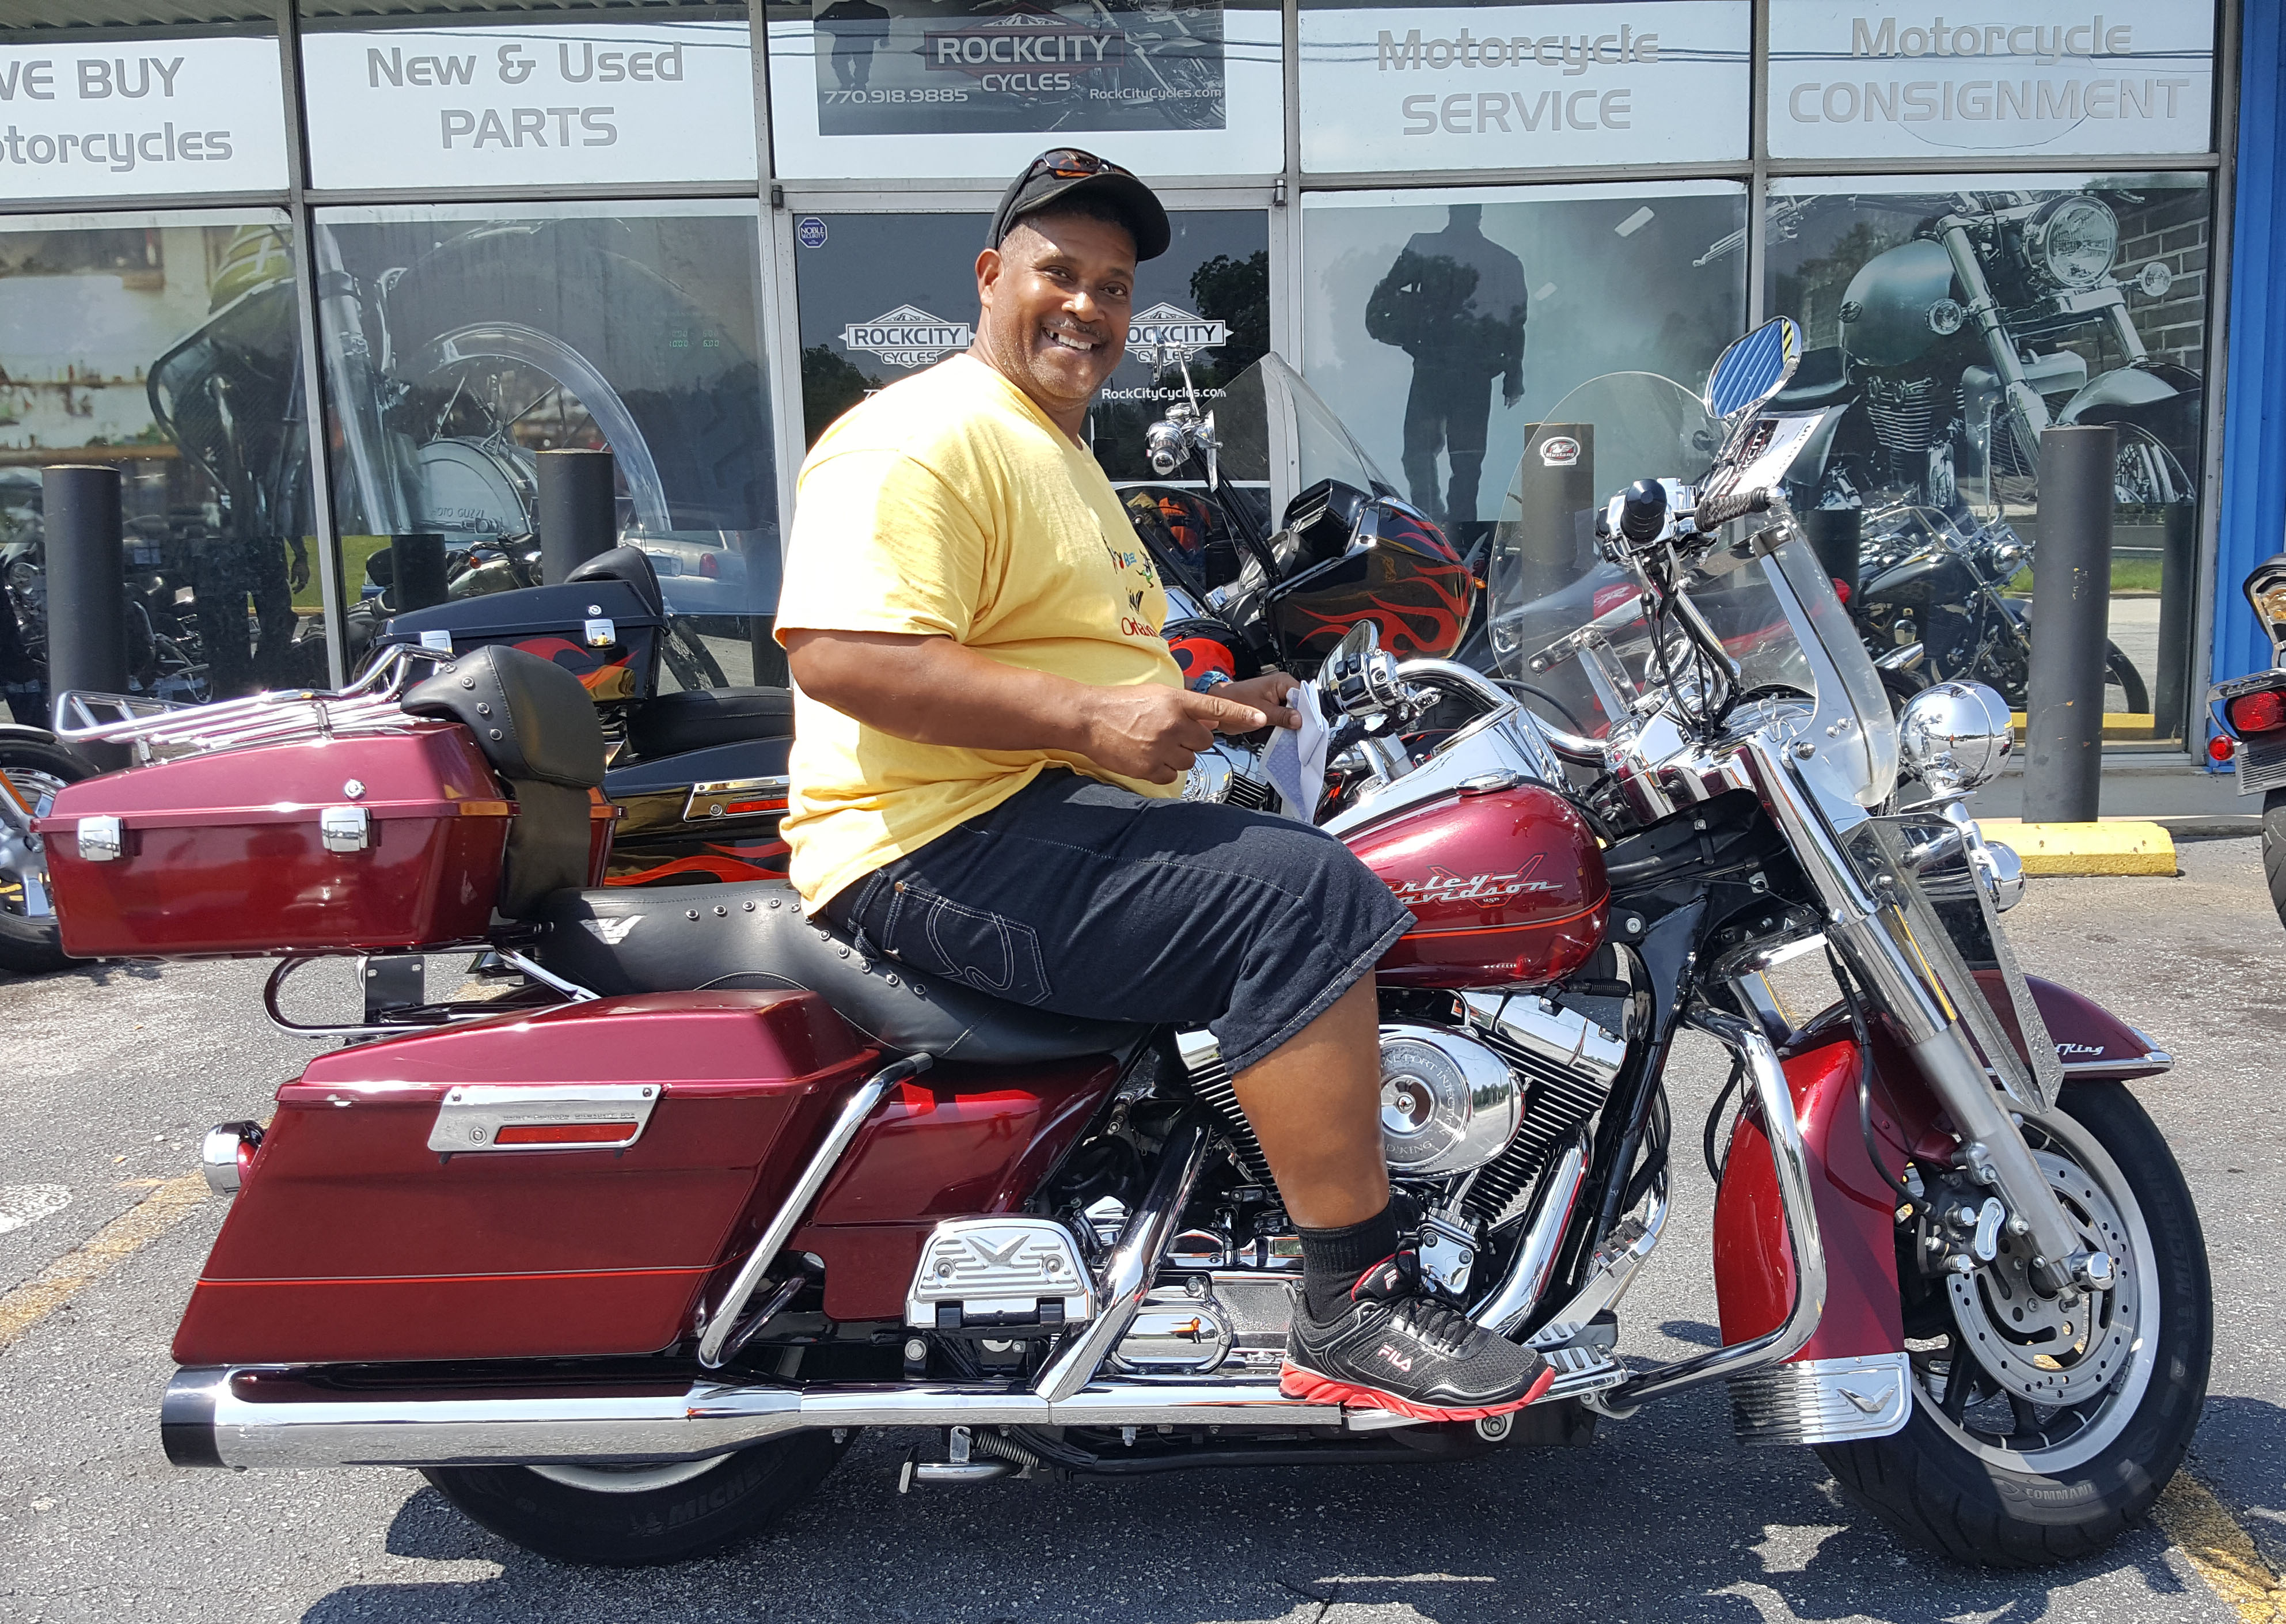 Alexander P. with his 2001 Harley-Davidson FLHRI Road King